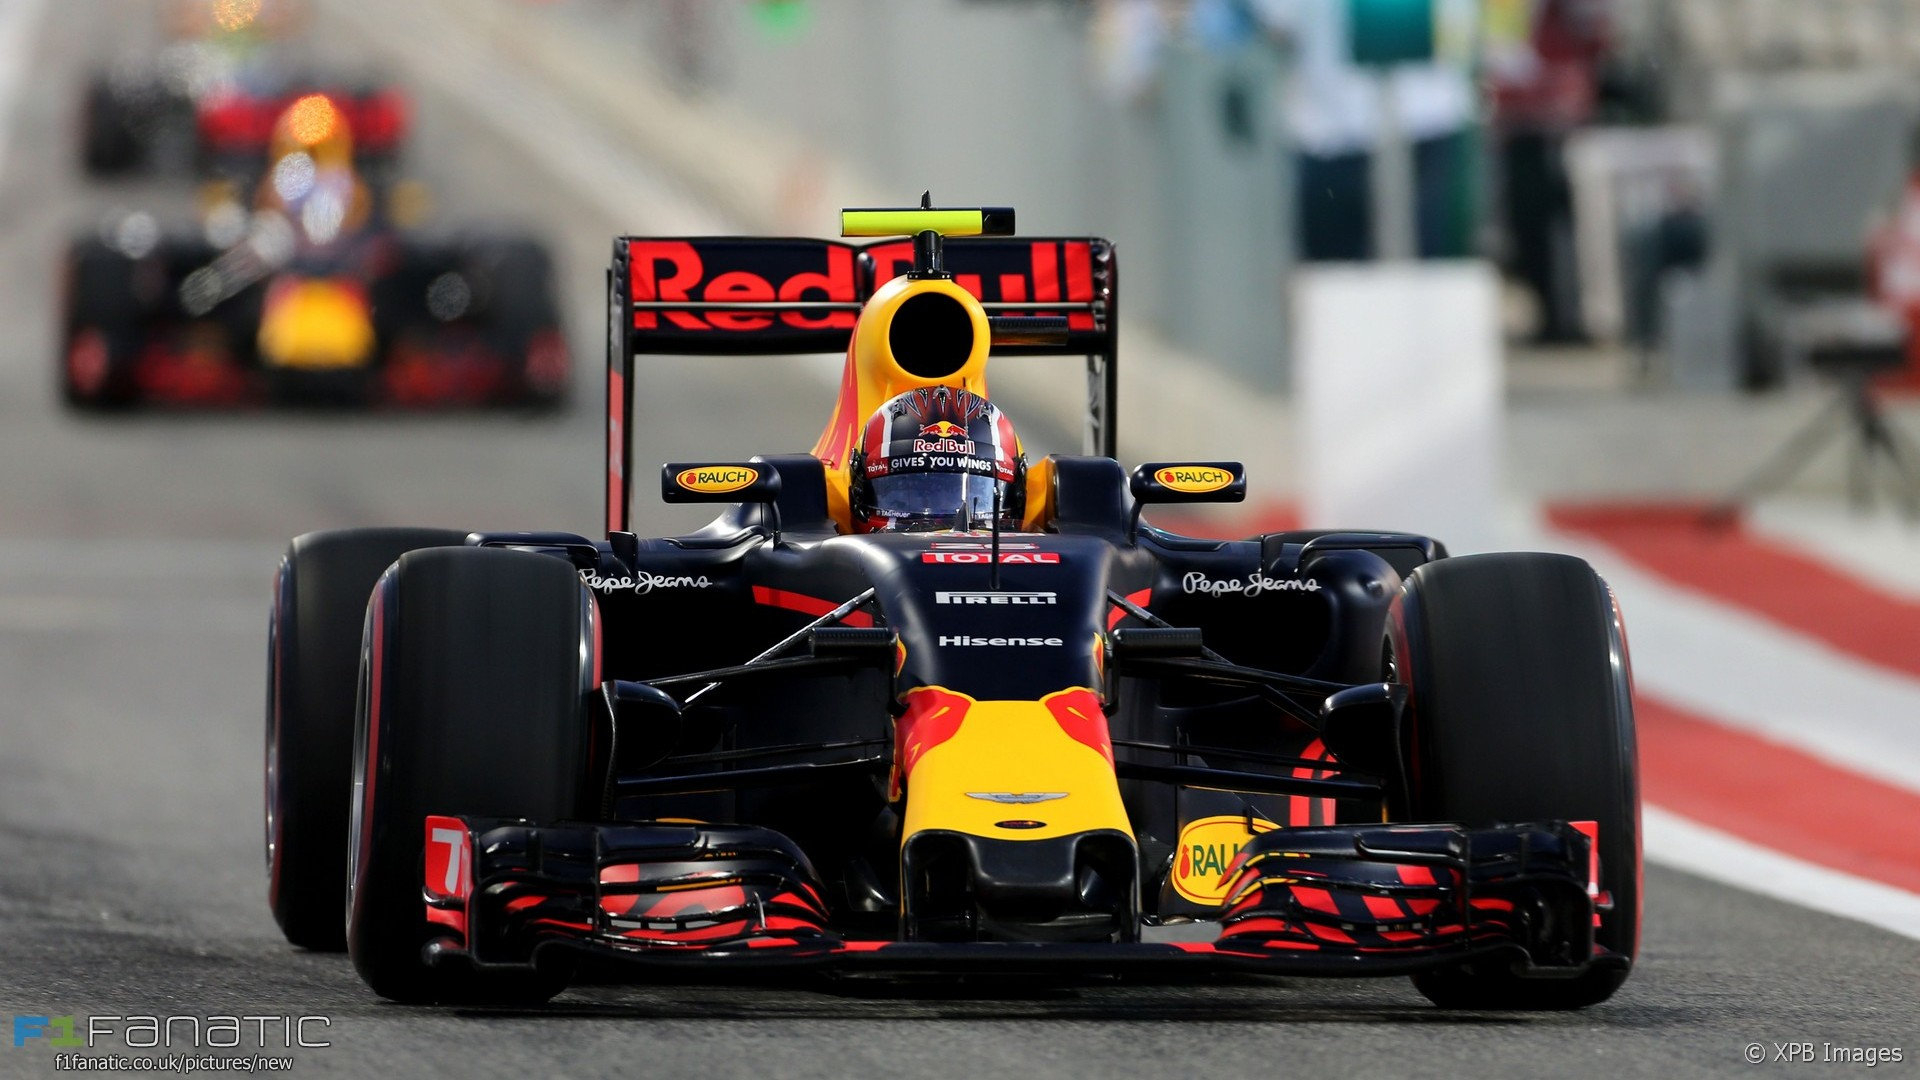 Daniil Kvyat, Red Bull, Bahrain International Circuit, 2016